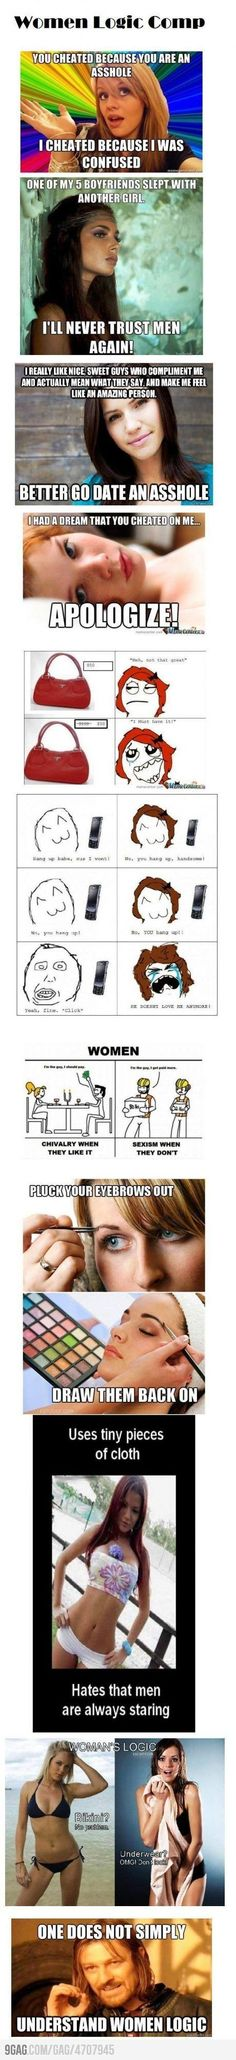 Women's logic...sadly true...